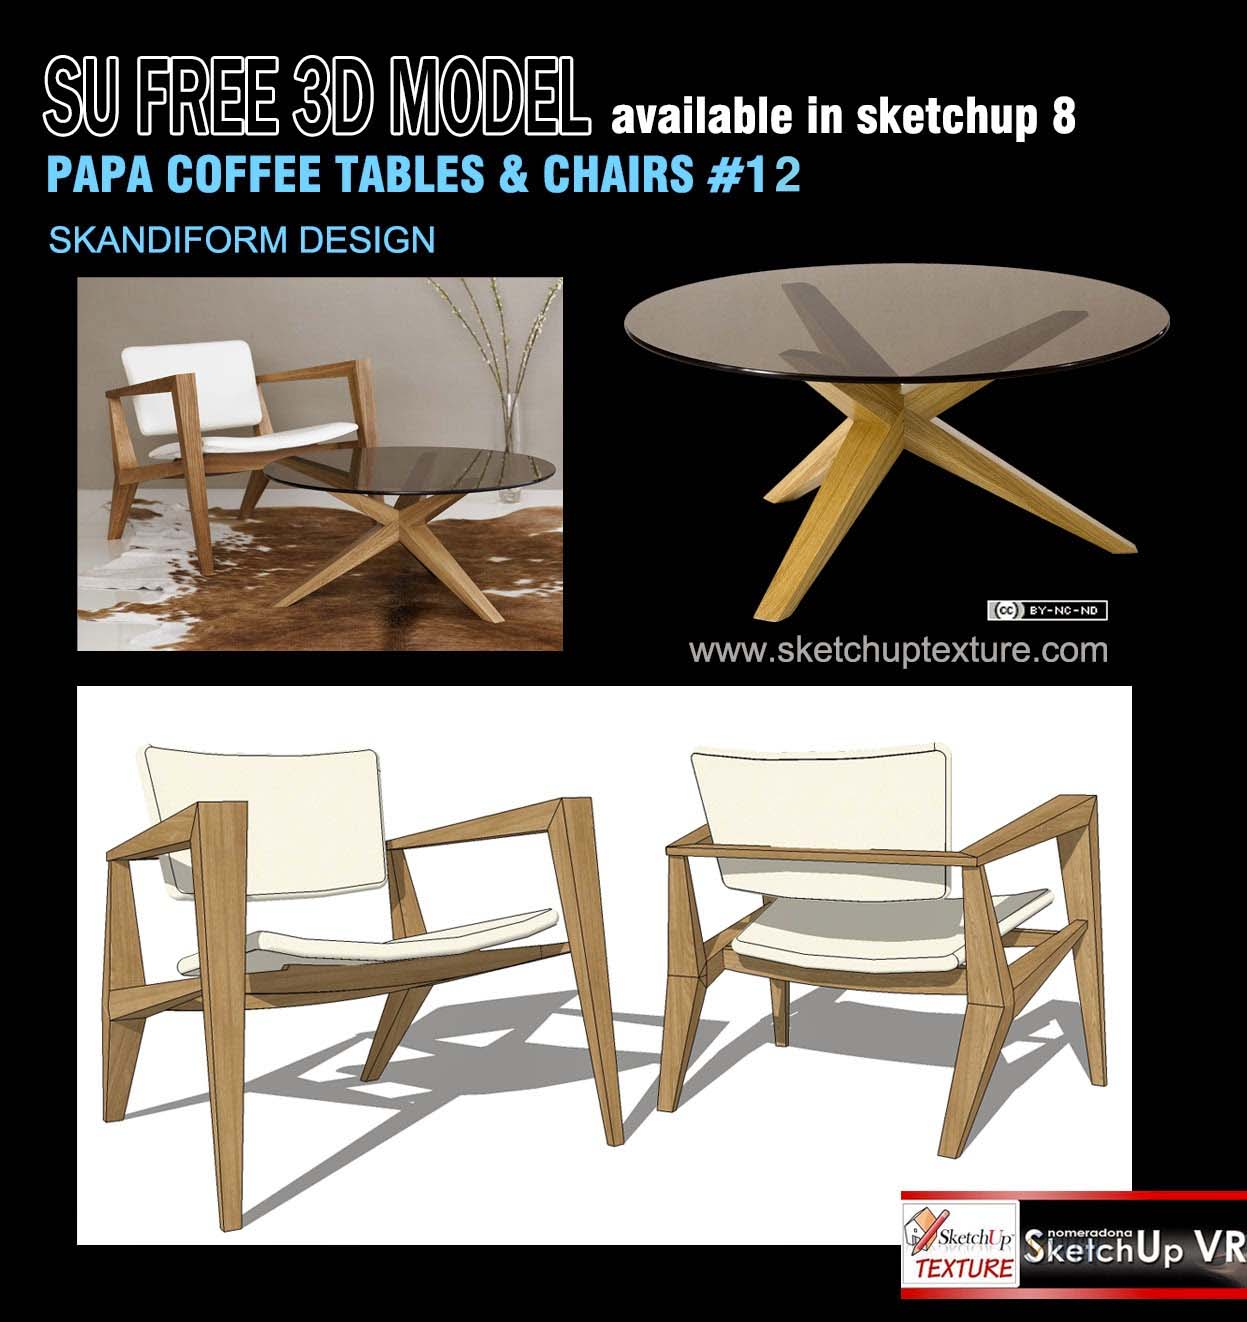 Sketchup texture free sketchup 3d model easy chair for Table design sketchup